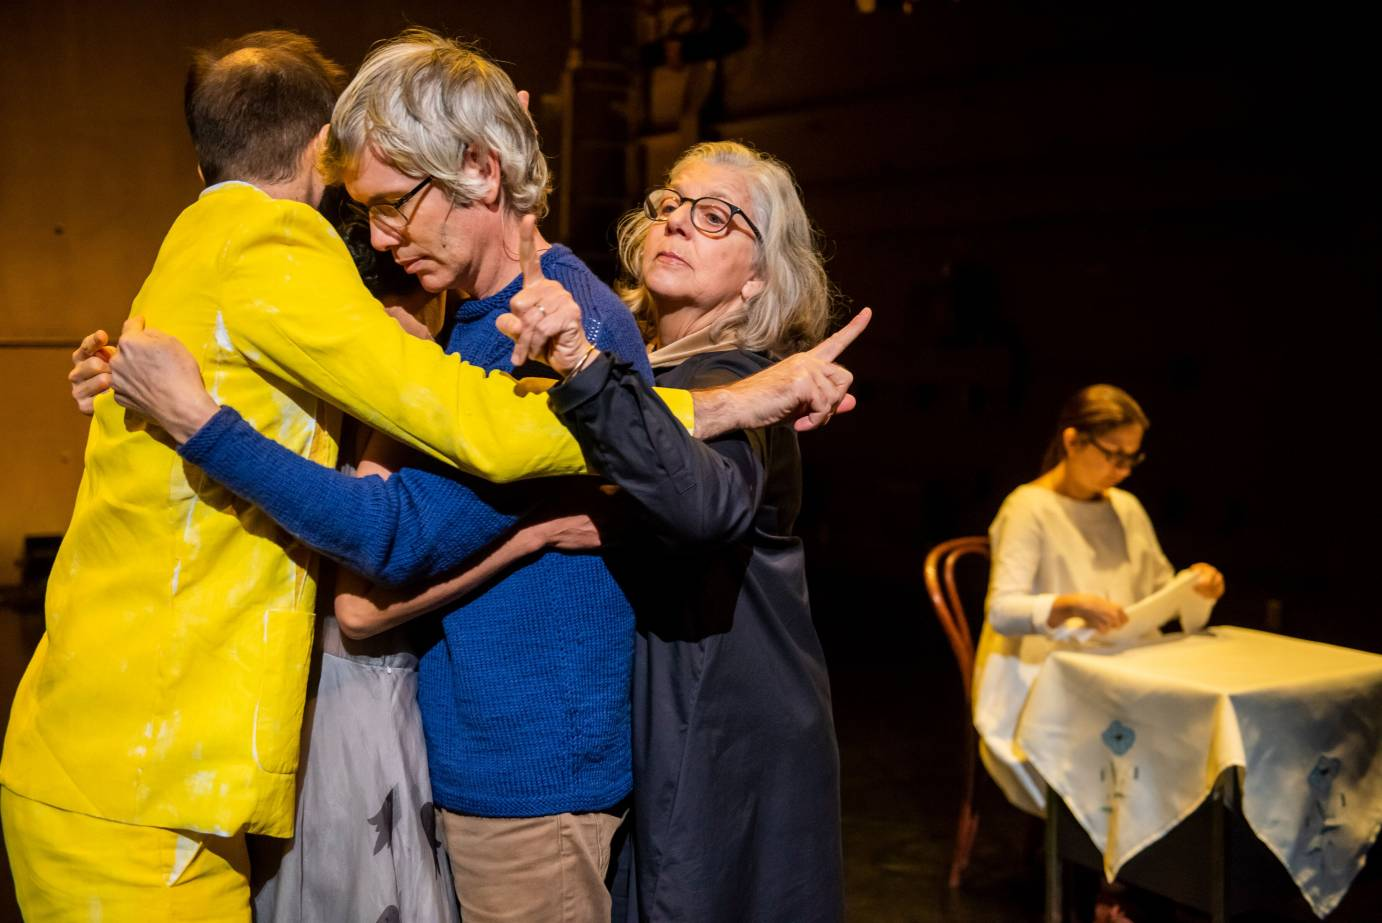 Four performers hug each other as another sits at a table folding a napkin